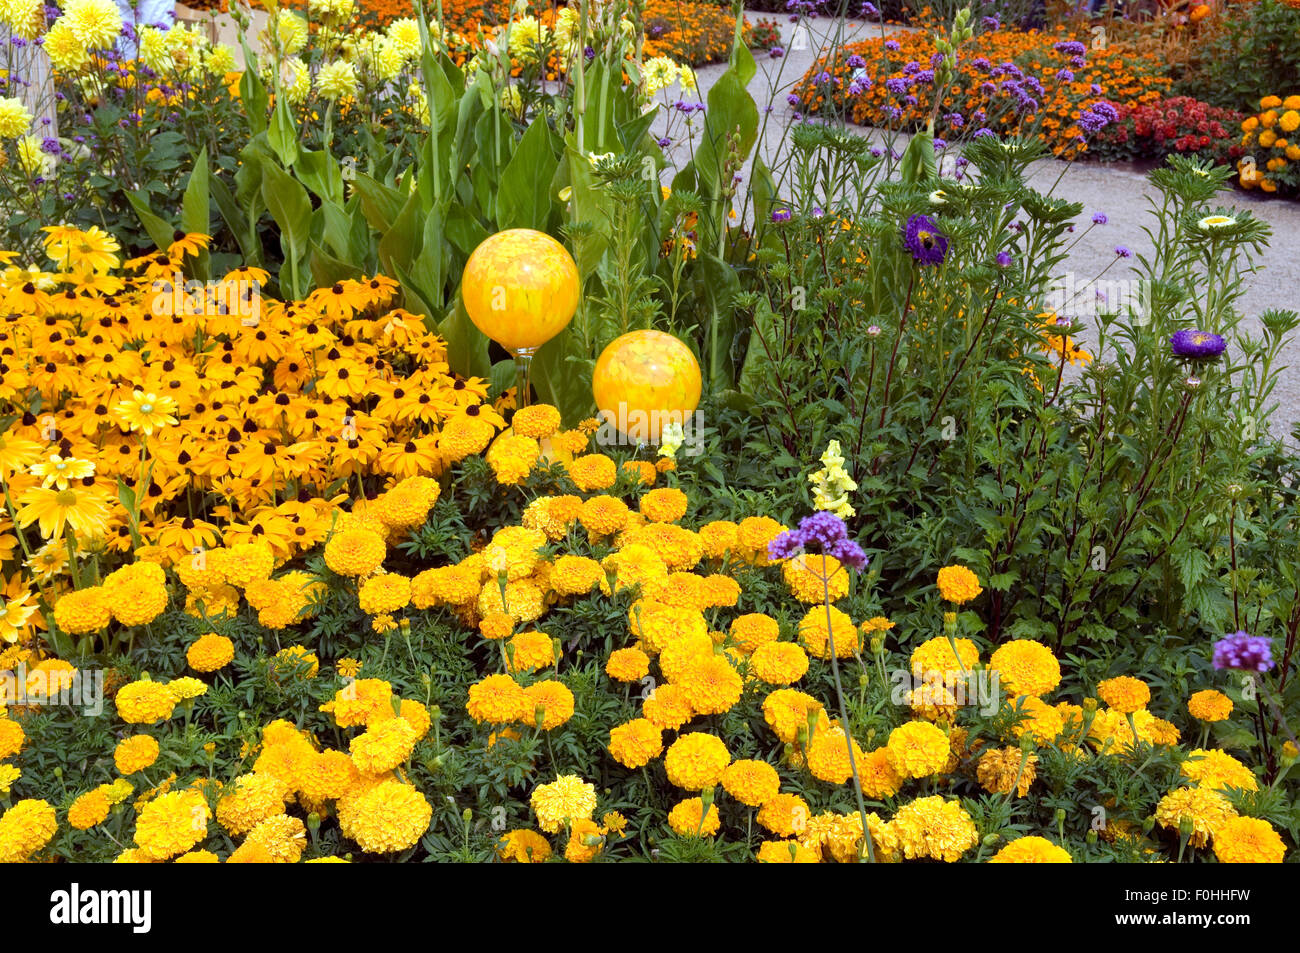 Rosenkugeln Blumenbeet Stock Photo 86438797 Alamy